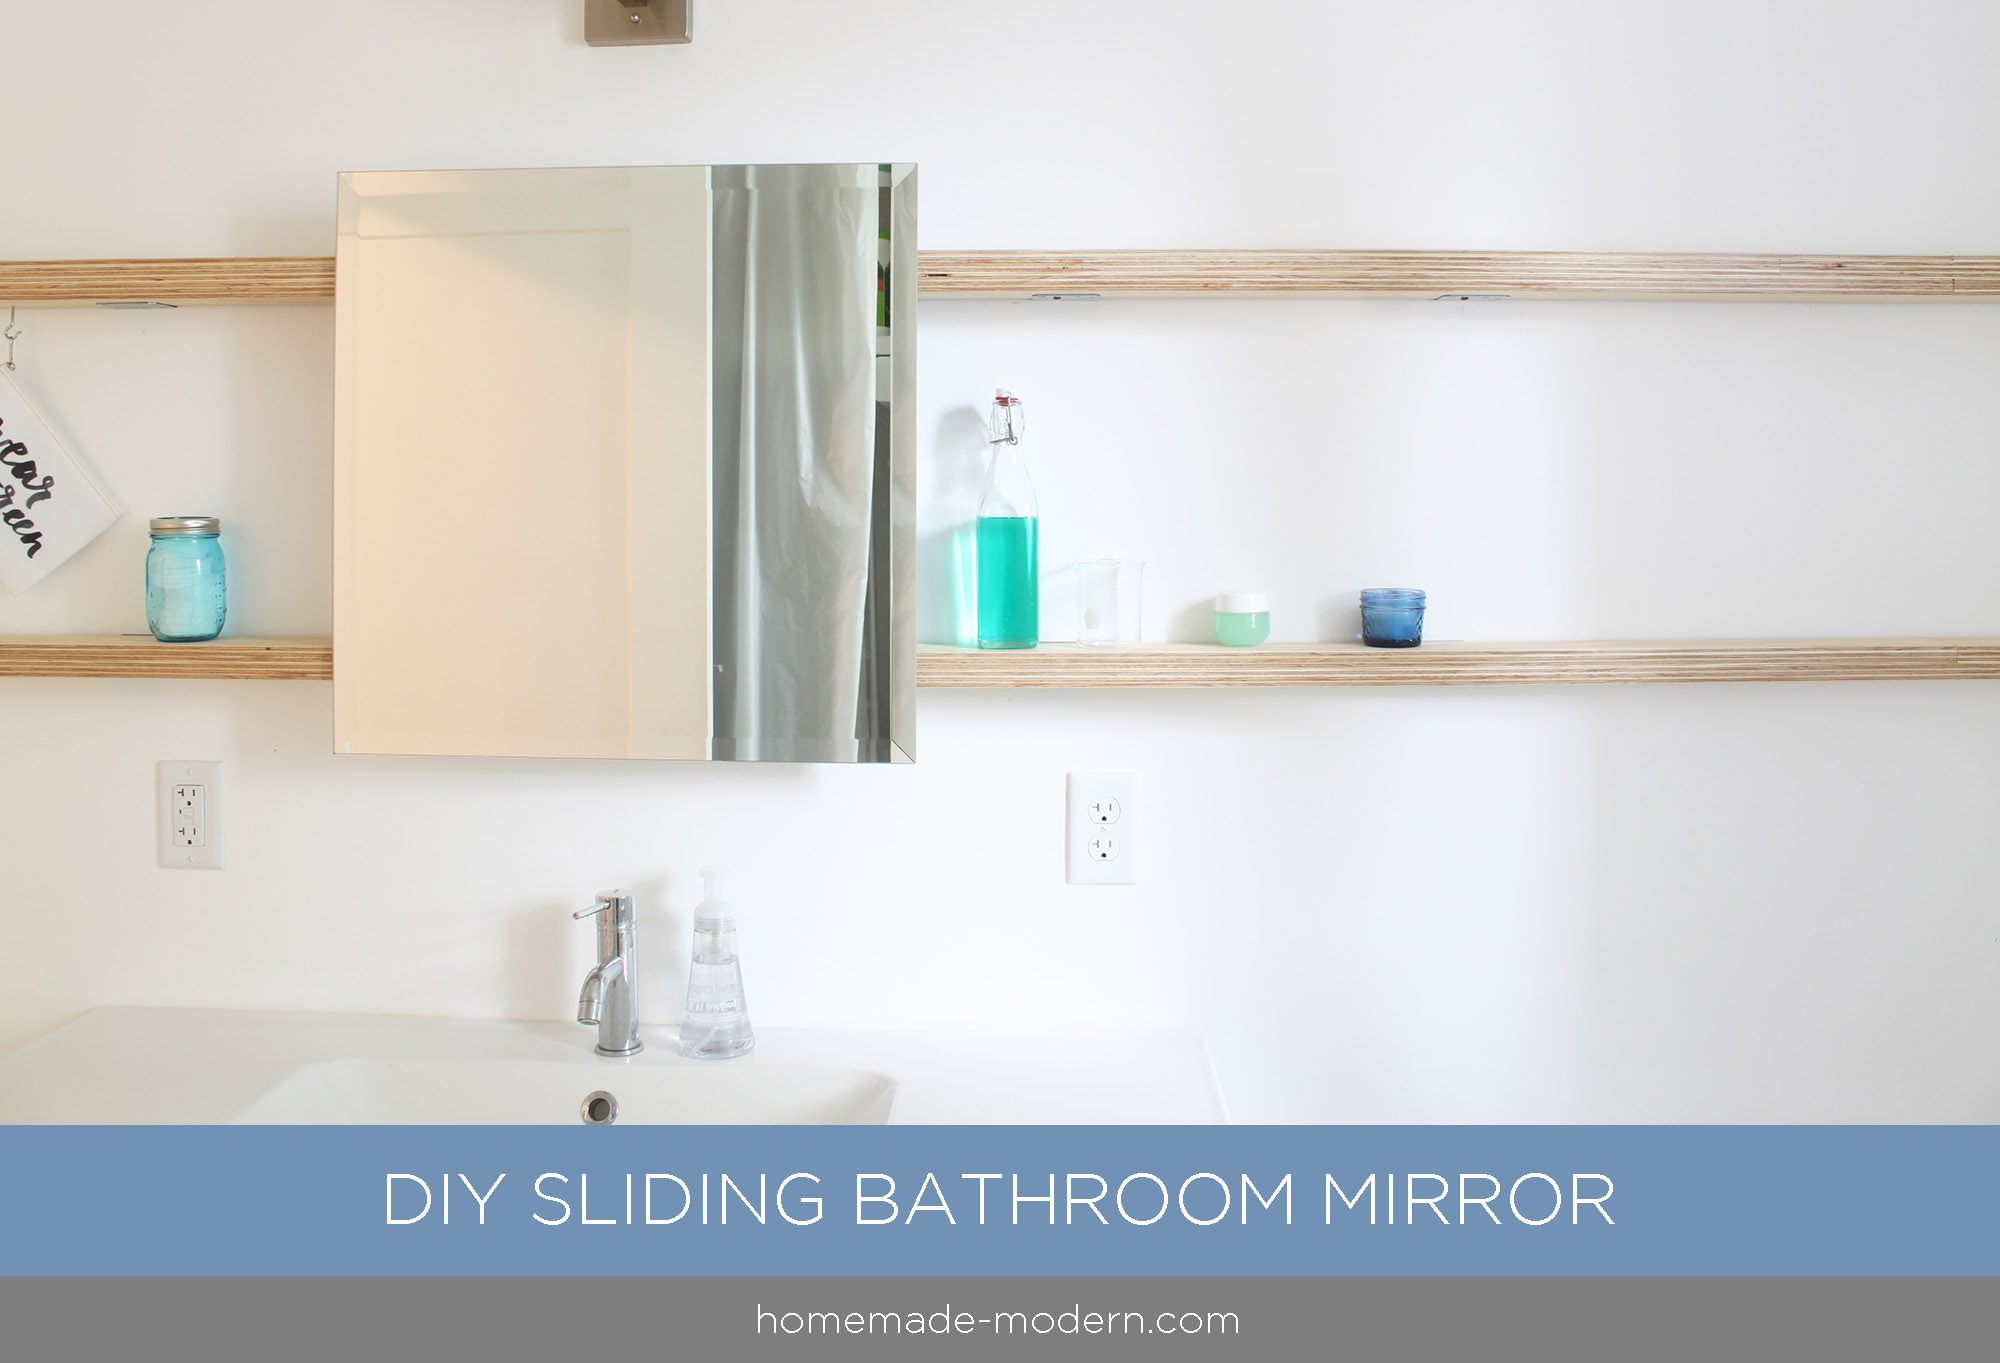 This bathroom mirror features DIY hardware that slides on plywood shelves. Full instructions can be found at HomeMade-Modern.com